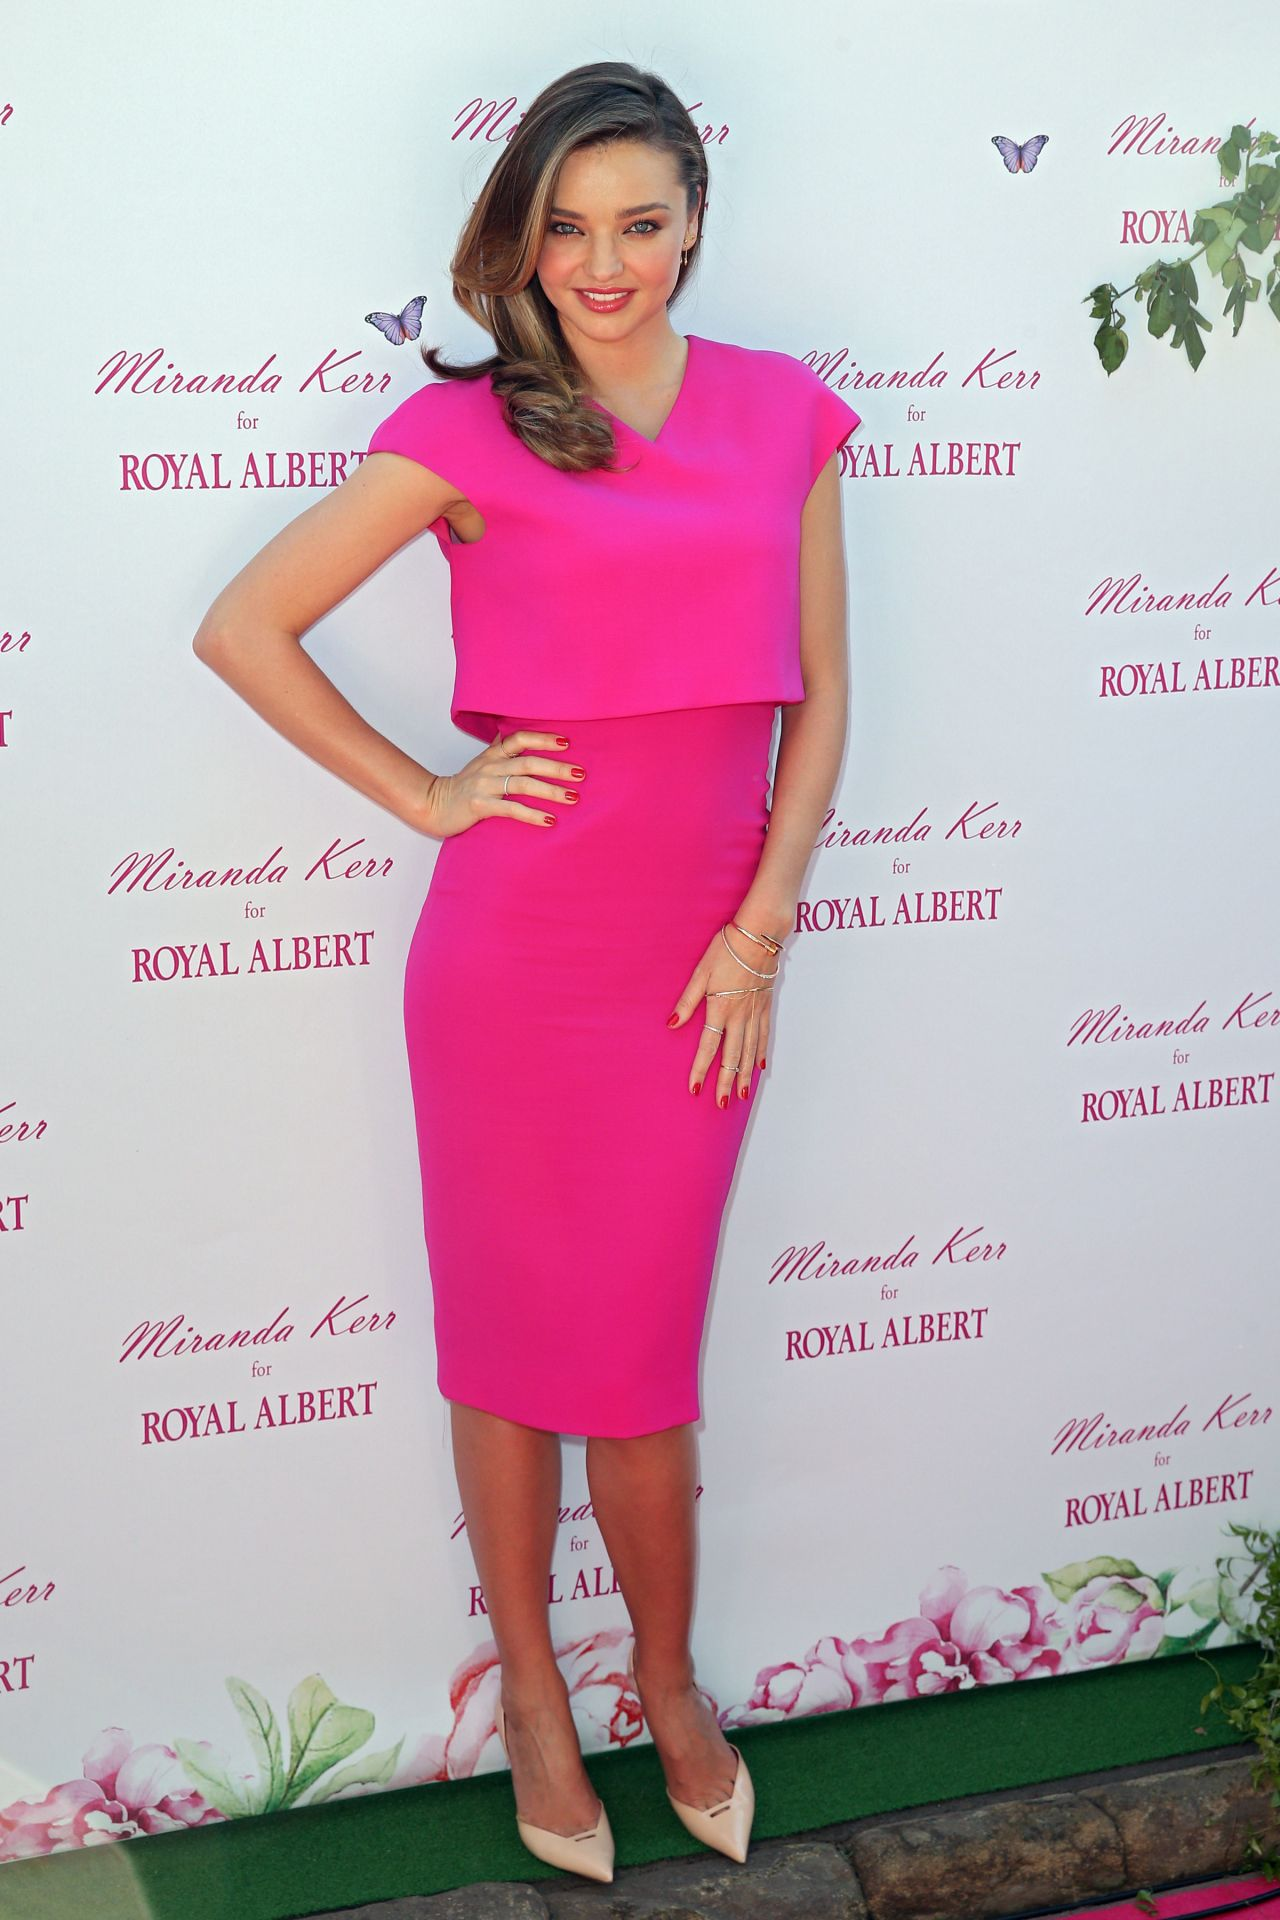 Miranda Kerr Wearing Victoria Beckham Dress Royal Albert